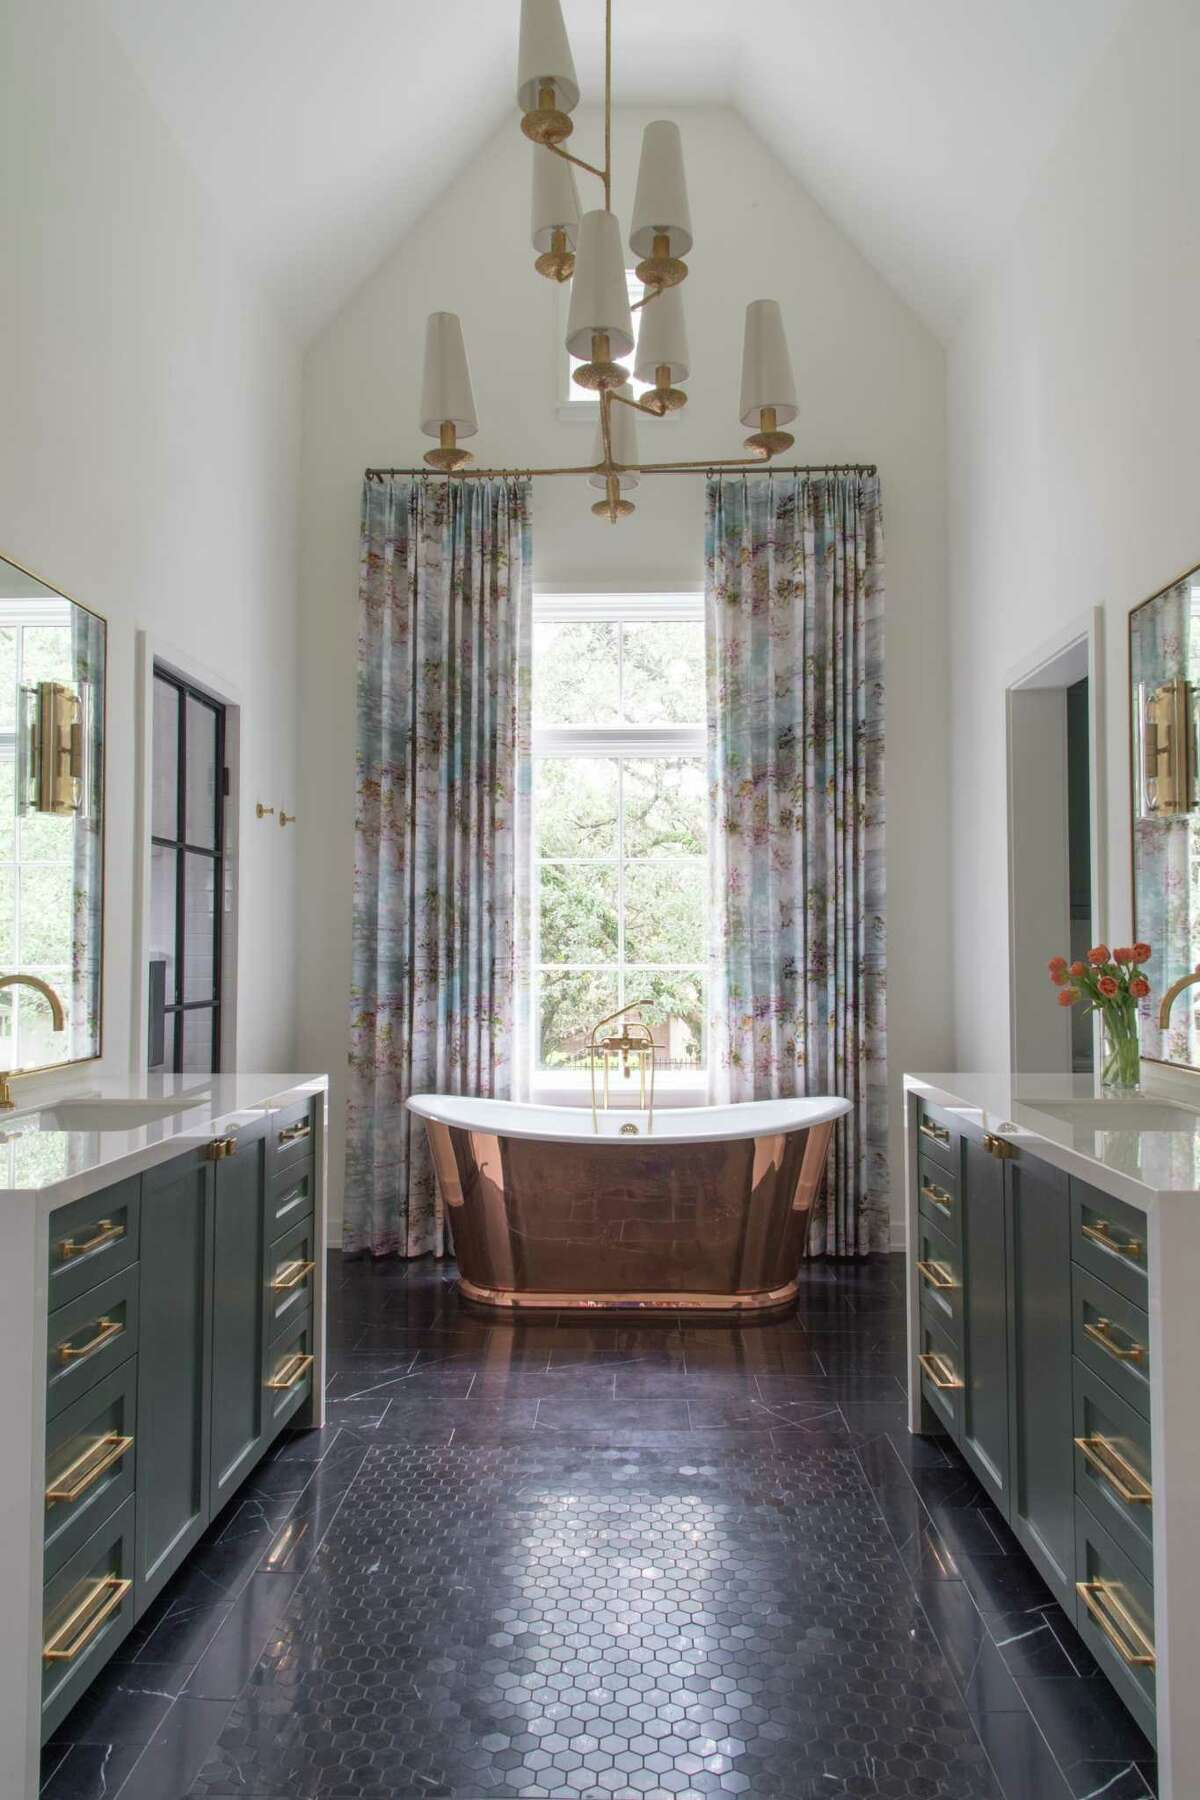 While a third of those remodeling choose to get rid of their master bathroom tub, those replacing it overwhelmingly choose a soaking tub, like this copper clad one.